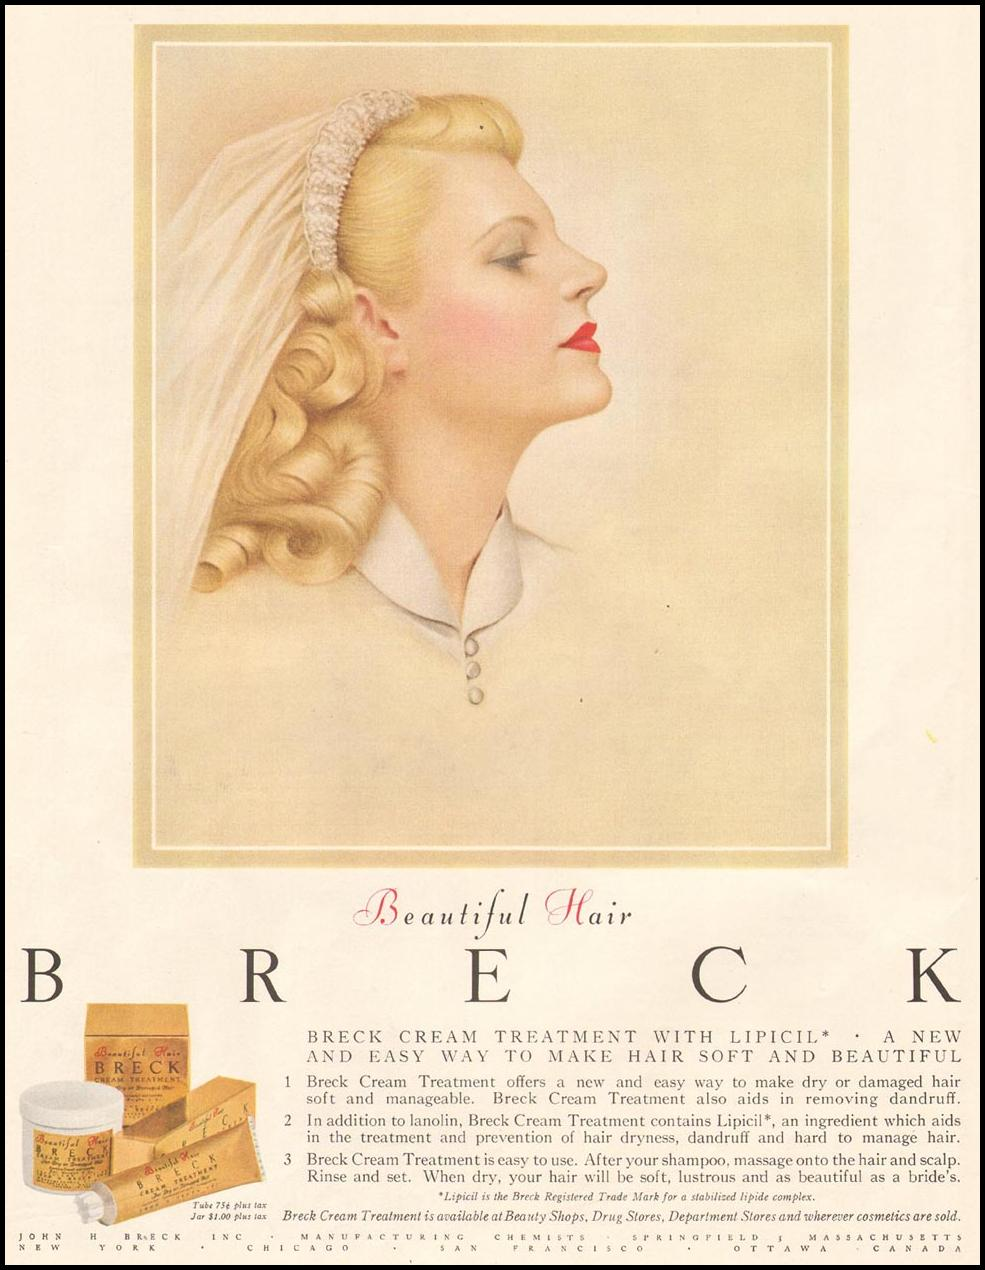 BRECK SHAMPOO LADIES' HOME JOURNAL 07/01/1954 p. 24